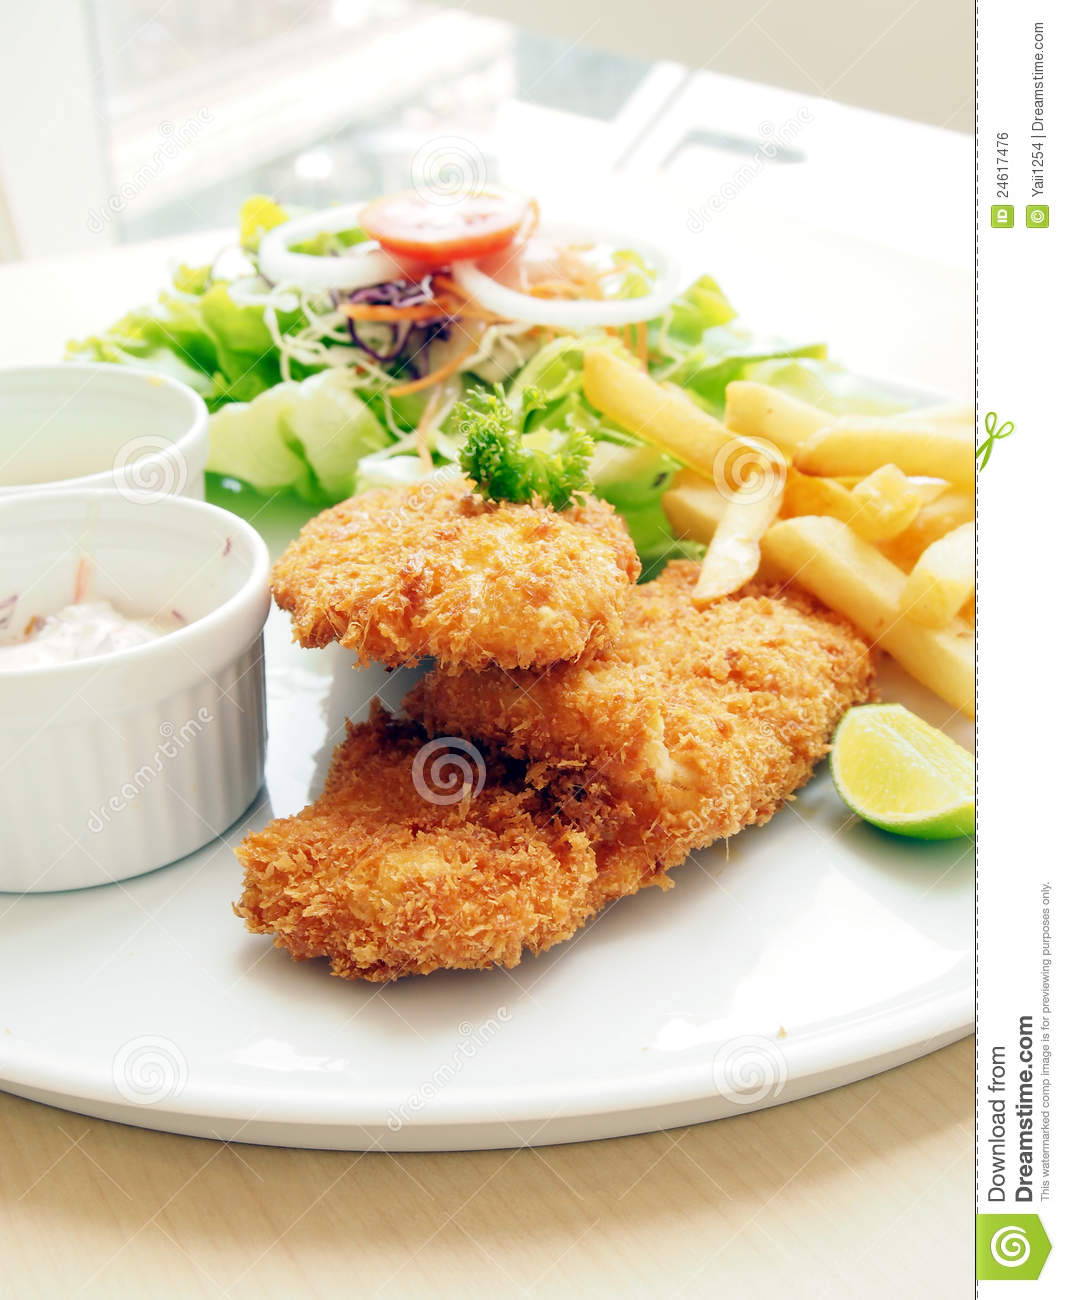 Fried fish royalty free stock image image 24617476 for What to eat with fried fish